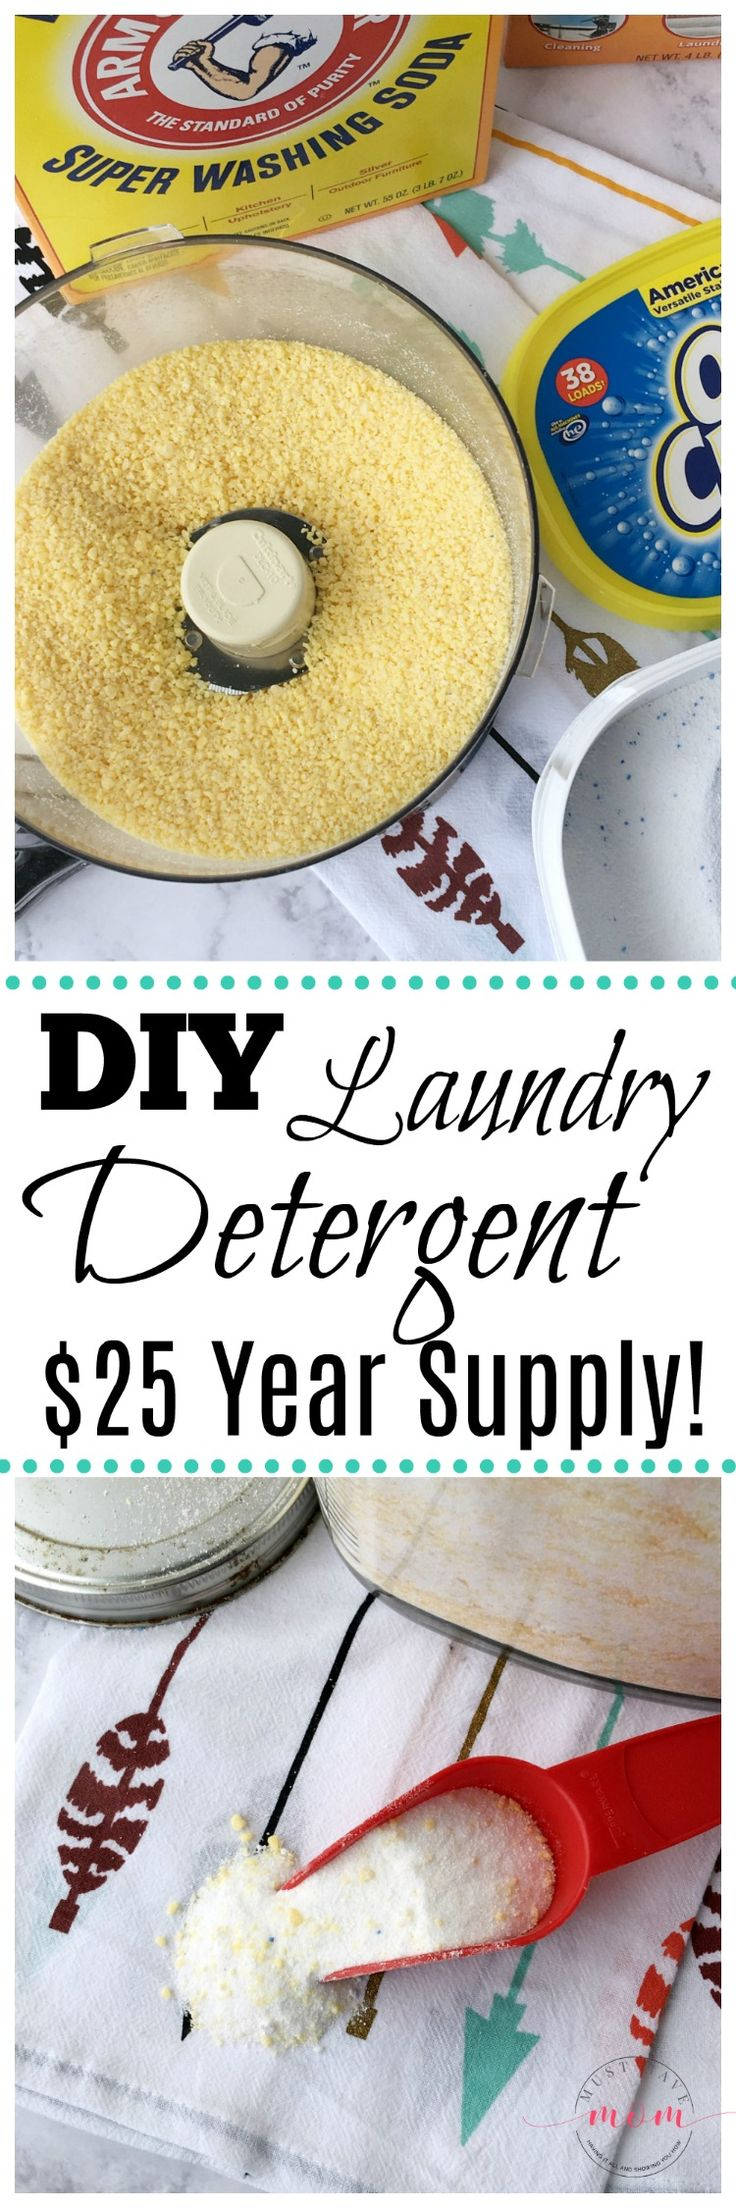 Make your own homemade laundry detergent recipe for just $25 for a year supply! Sponsored #SuperWashingSoda